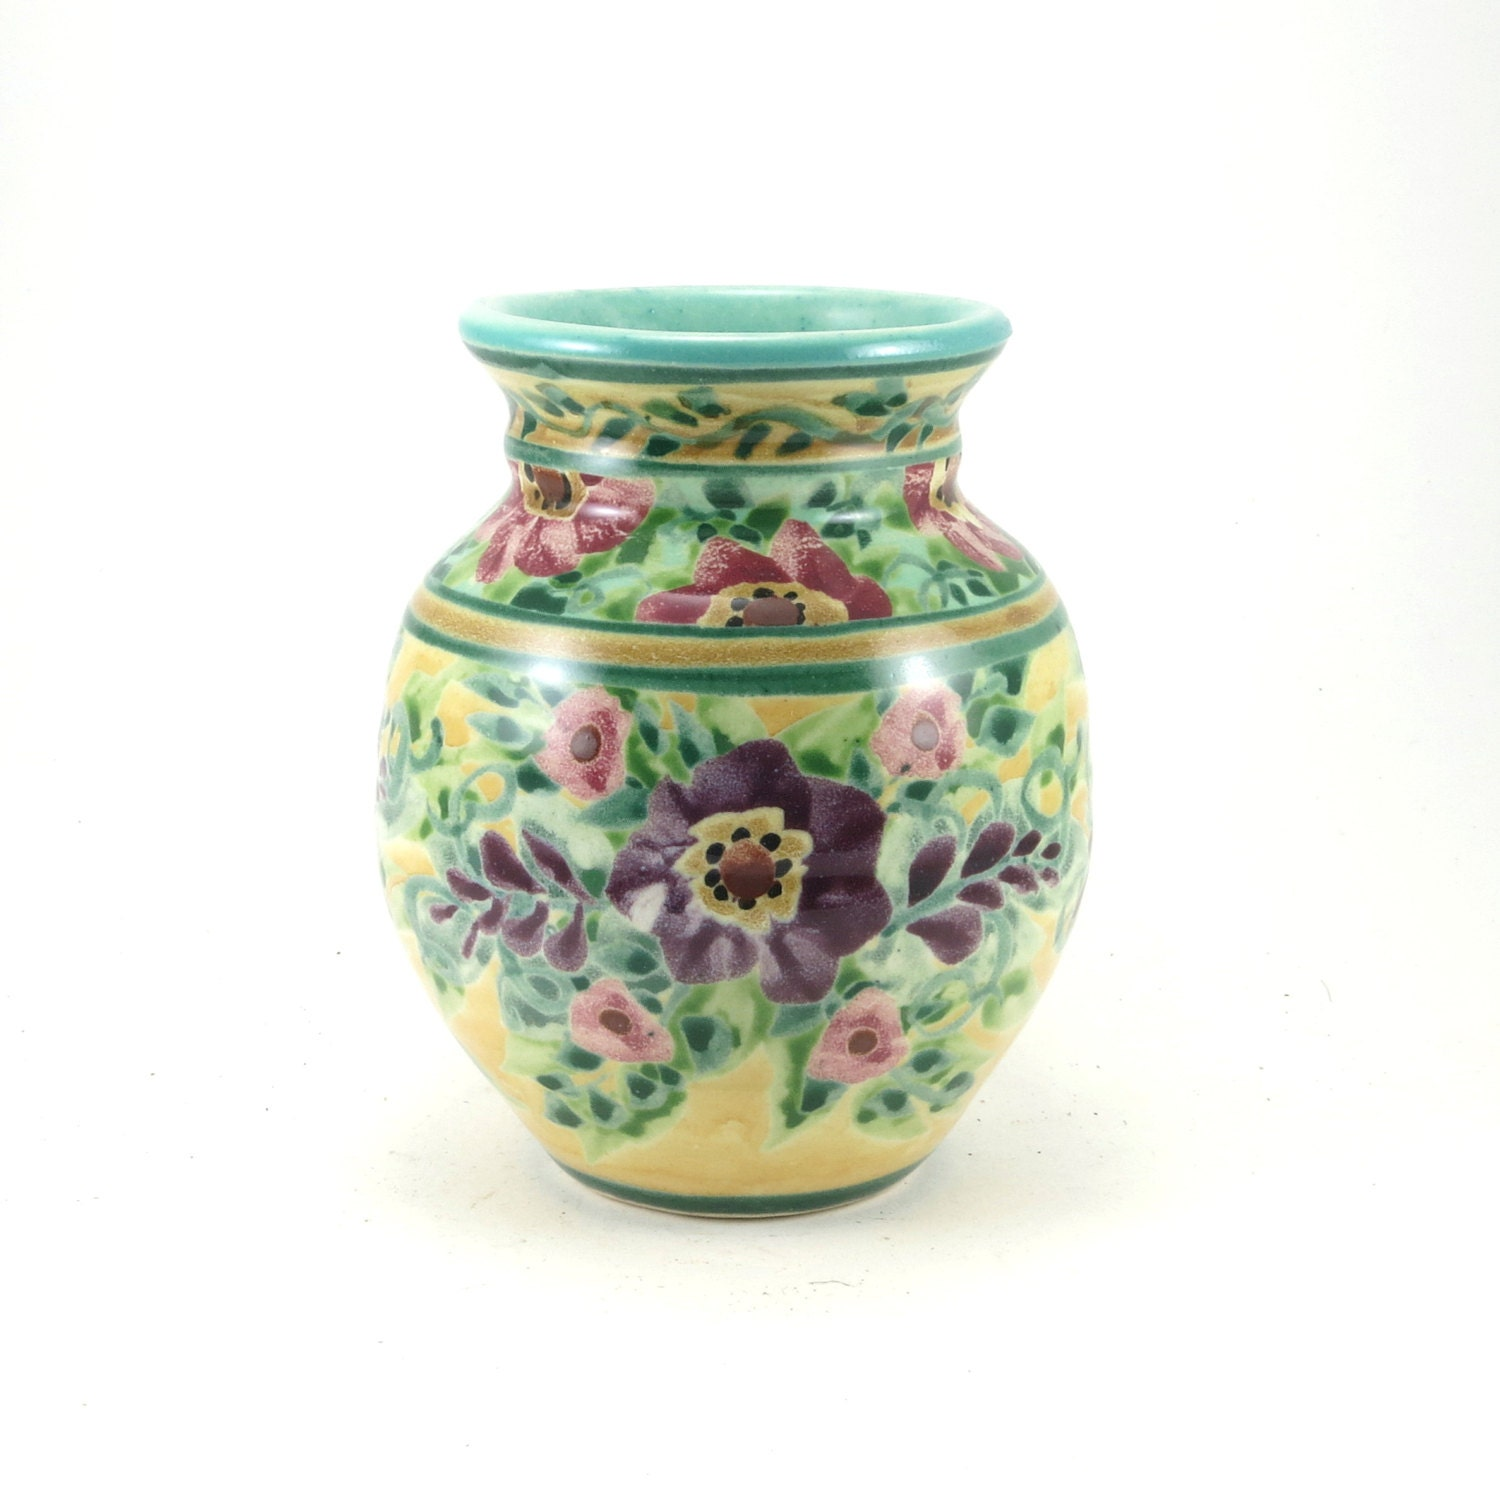 Yellow flower vase small decorative ceramic bud vase for Decoration vase